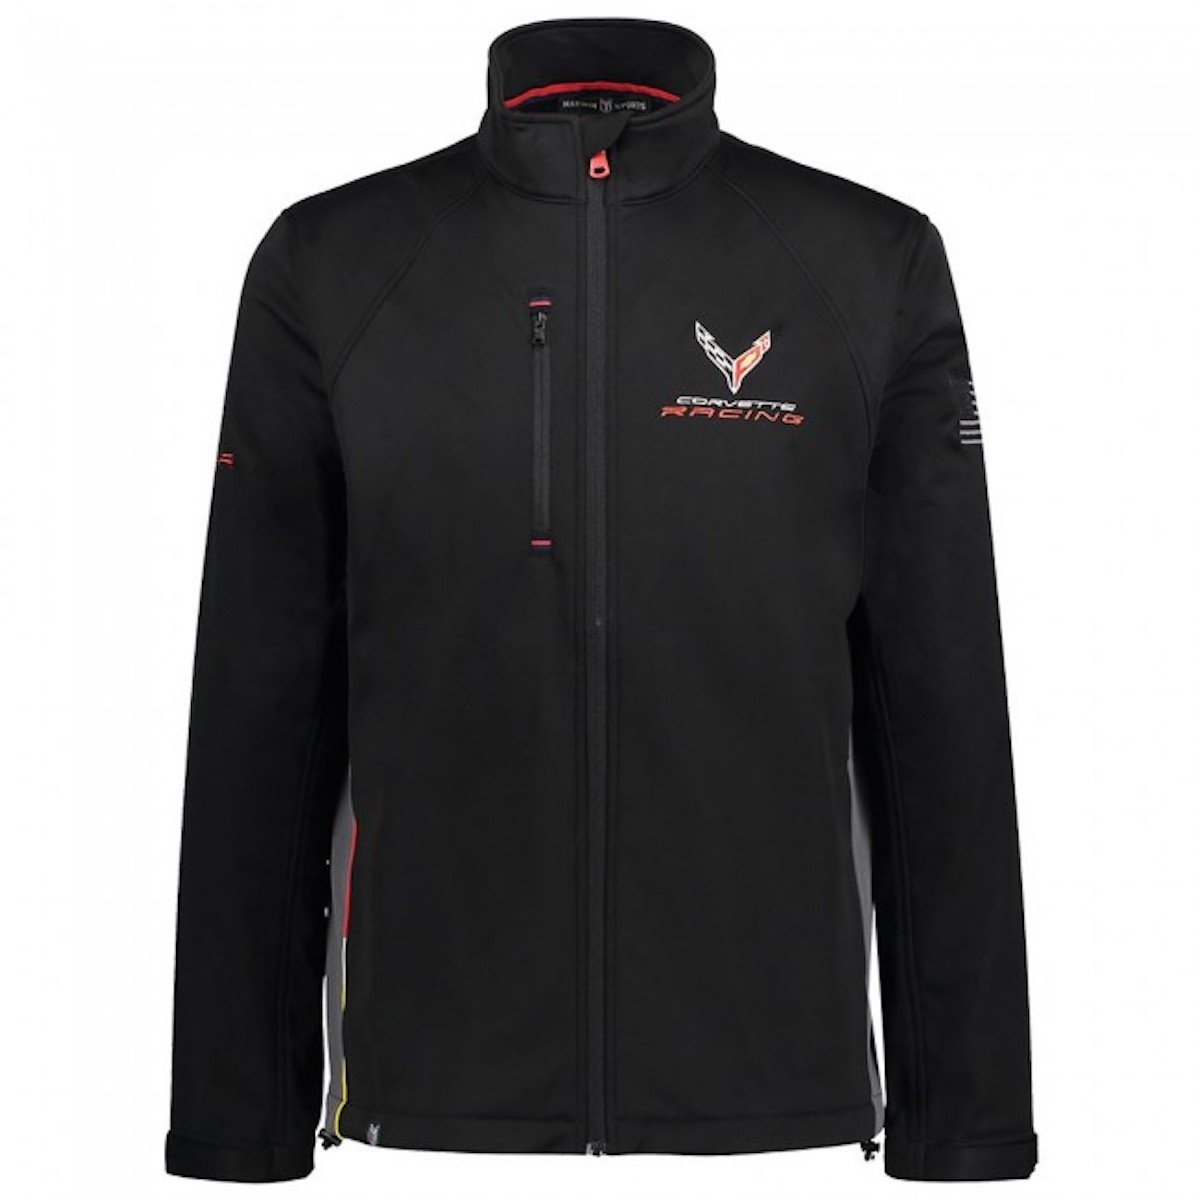 An official Corvette racing jacket, priced at $175.00 USD on Official Corvette Racing Store